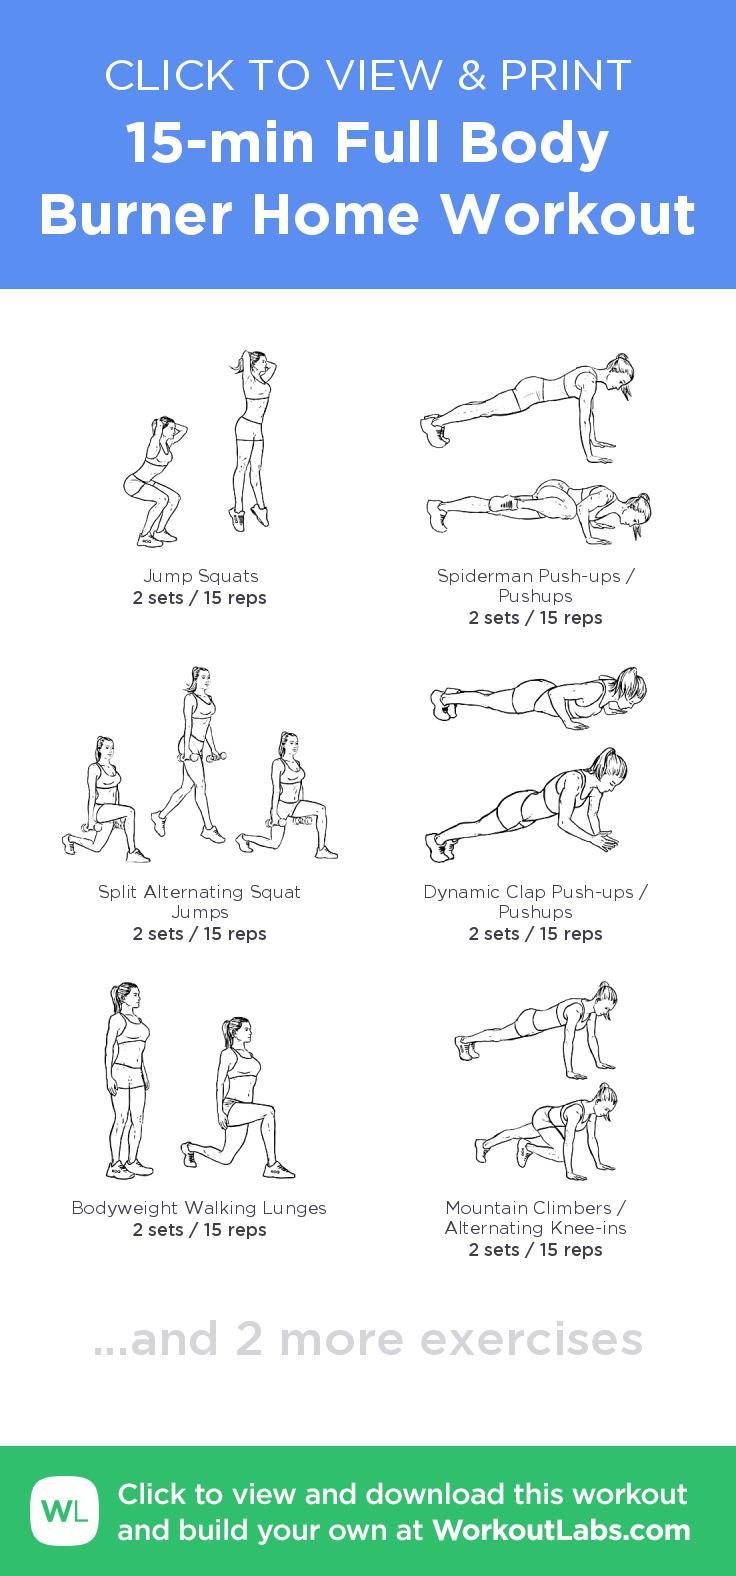 15-min Full Body Burner Home Workout – click to view and print this ...